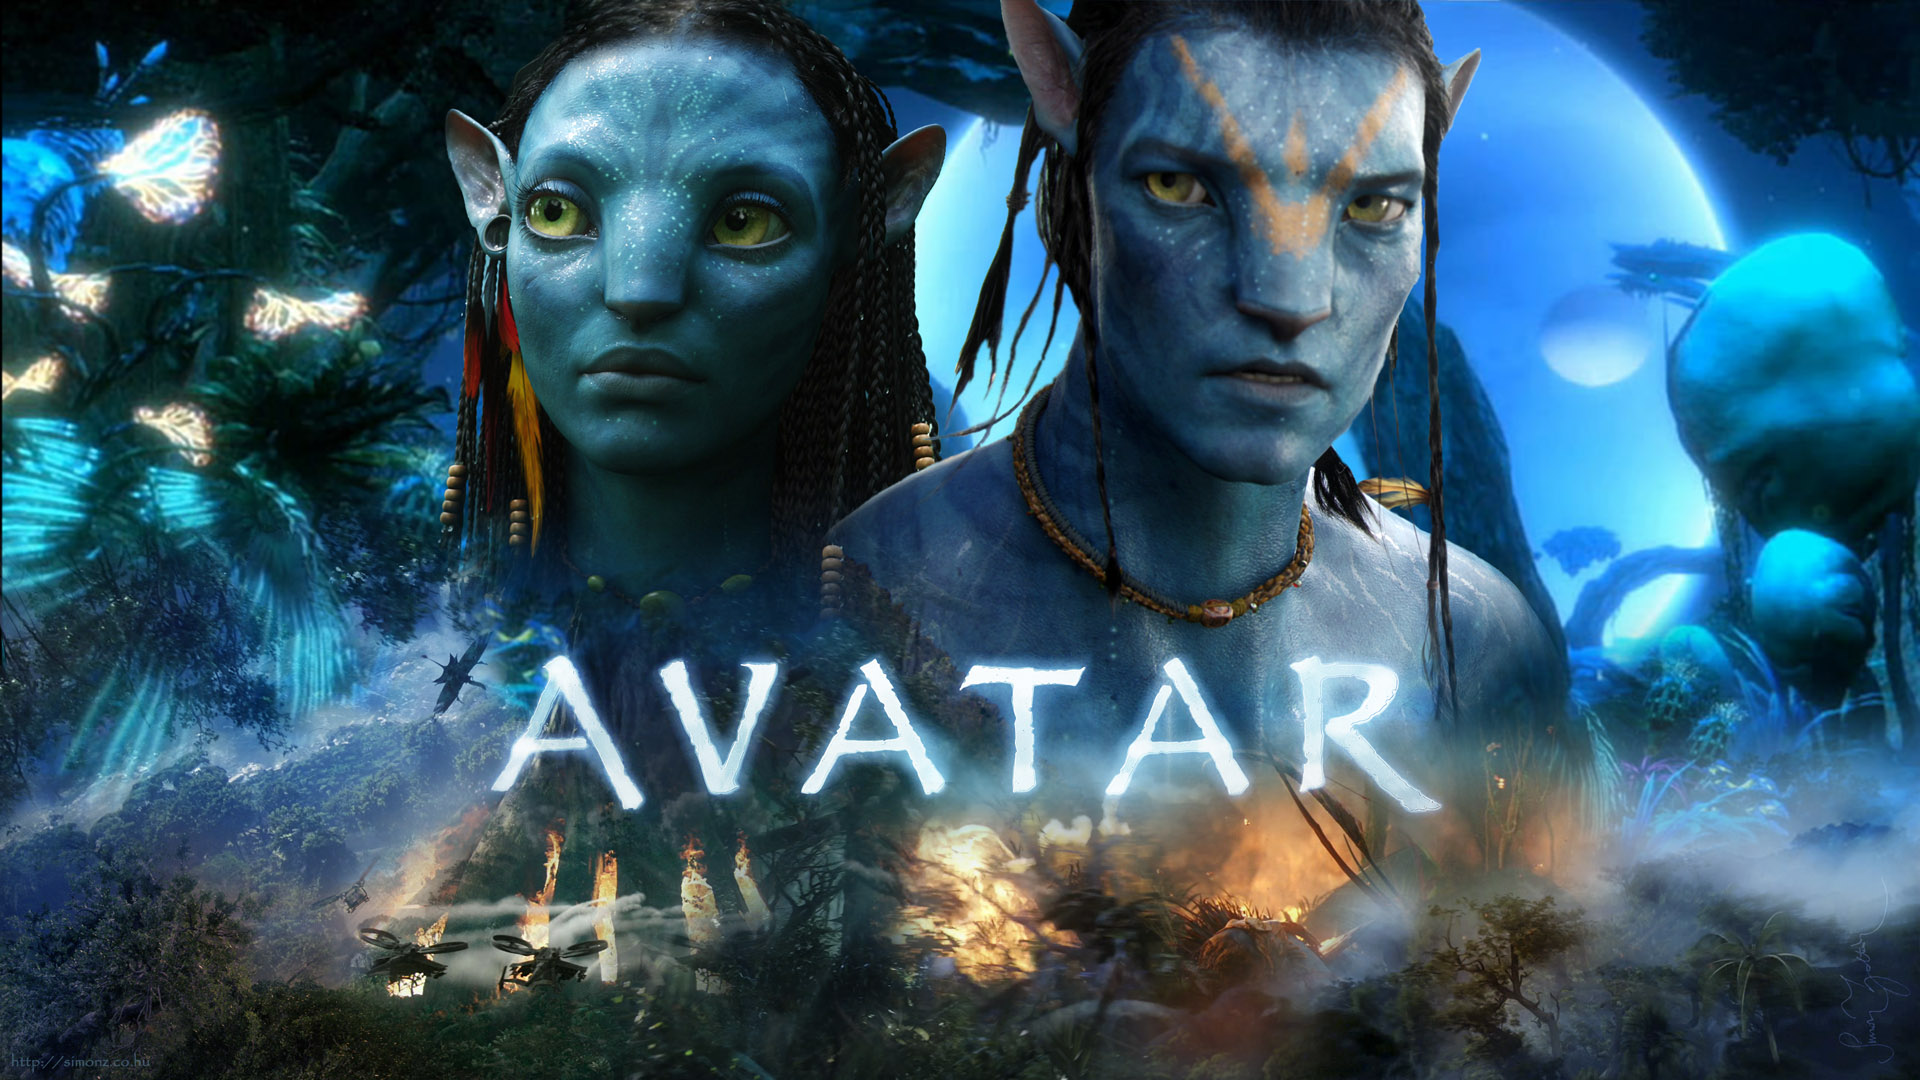 Avatar 4 and 5 Disney-Fox Deal